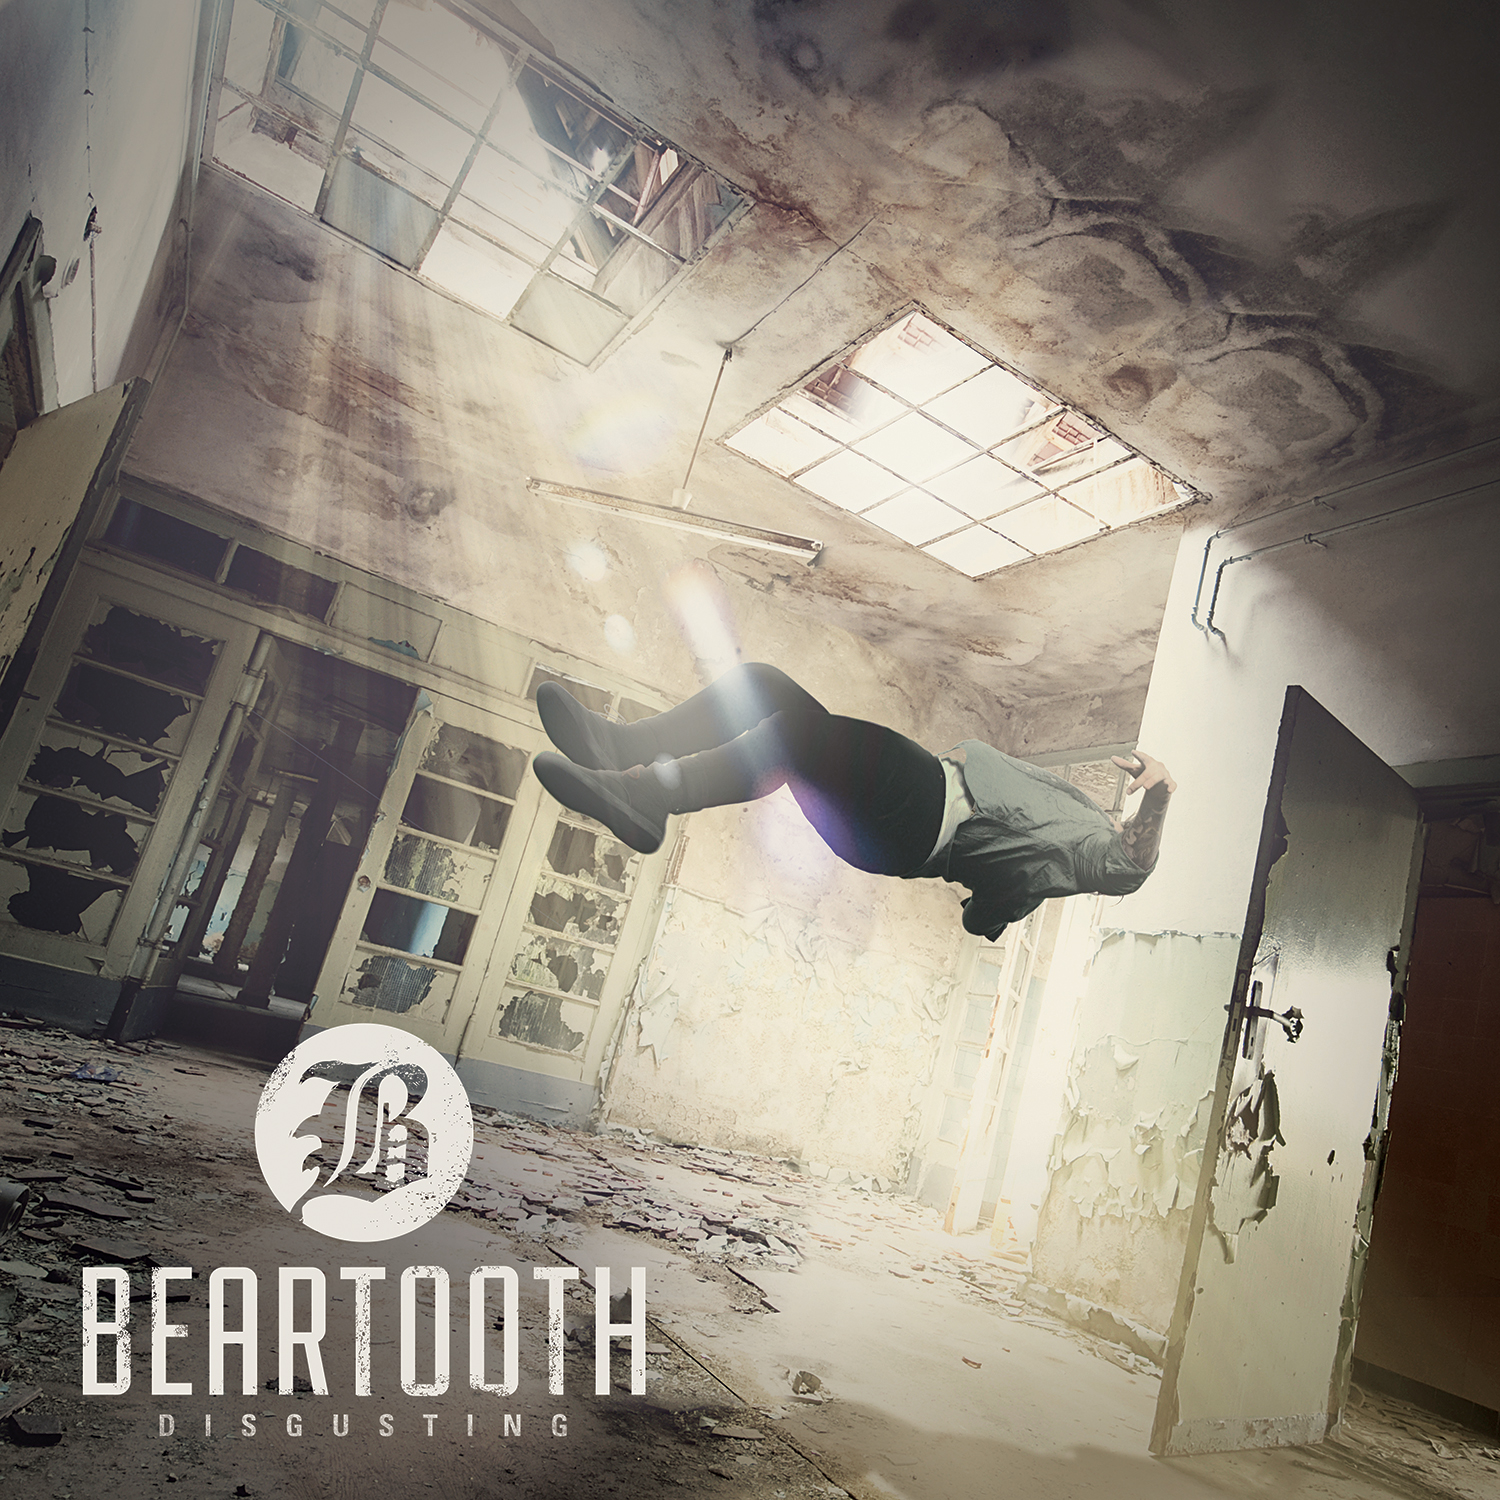 Beartooth - Disgusting Album Cover